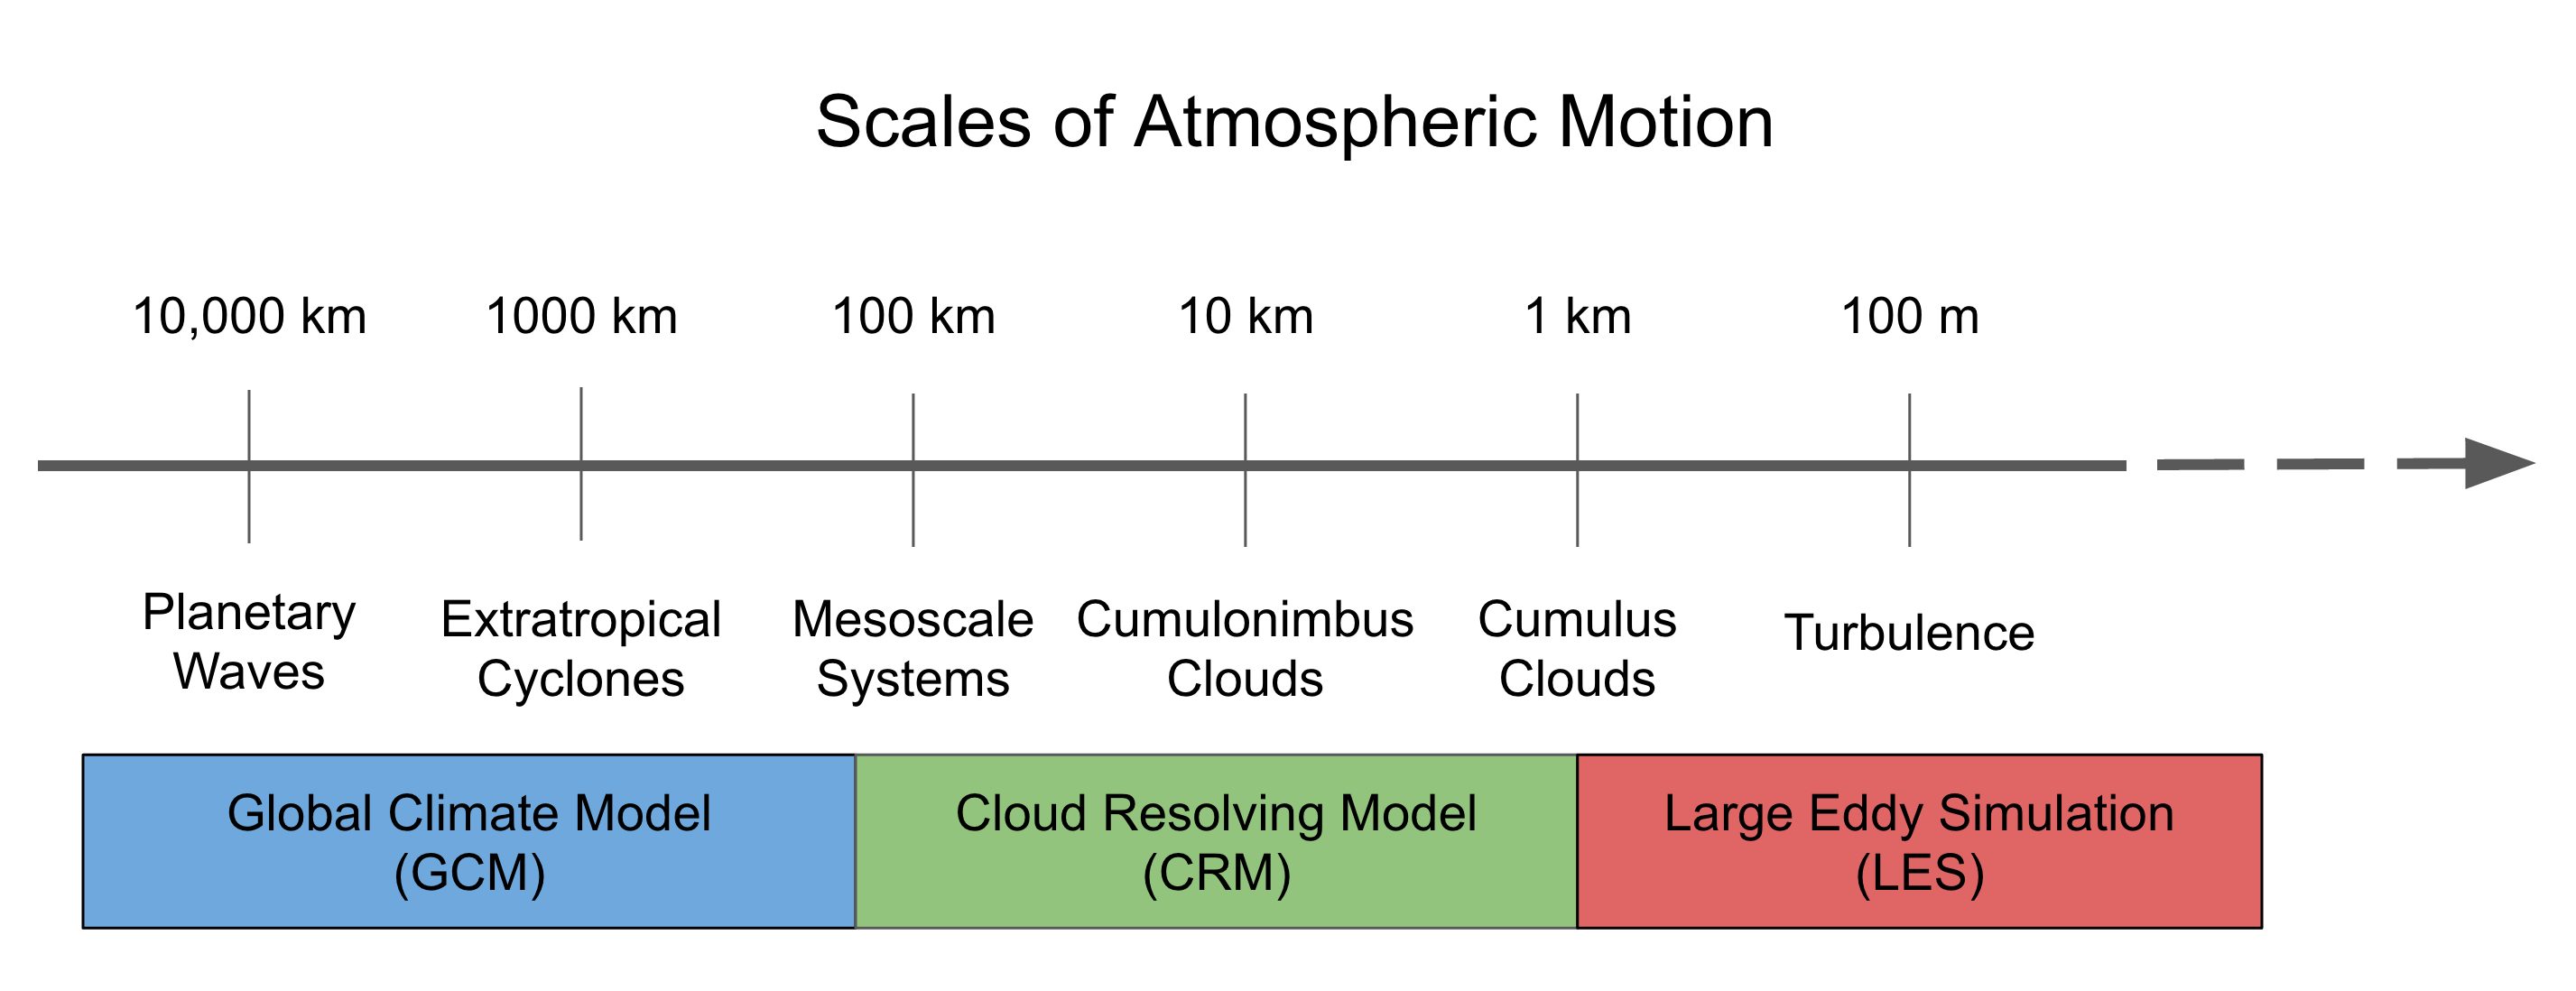 atmospheric scales of motion